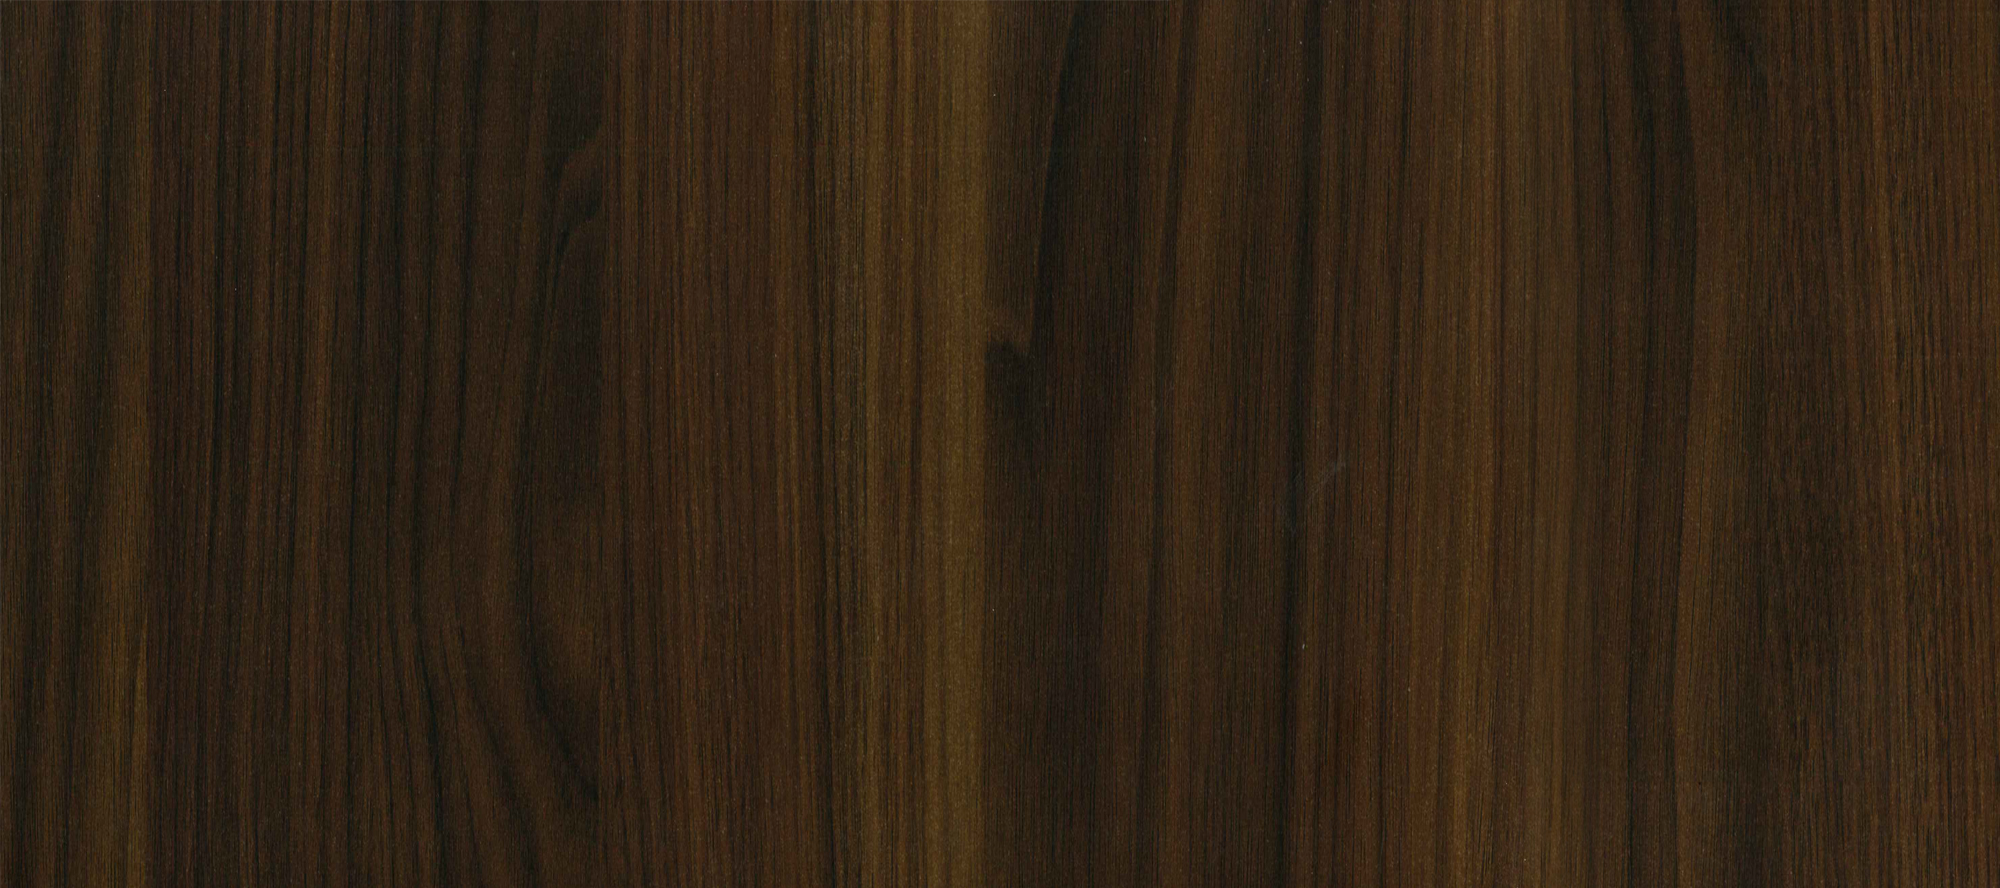 Sonata Range of MarroneWalnut laminate - Sundek International